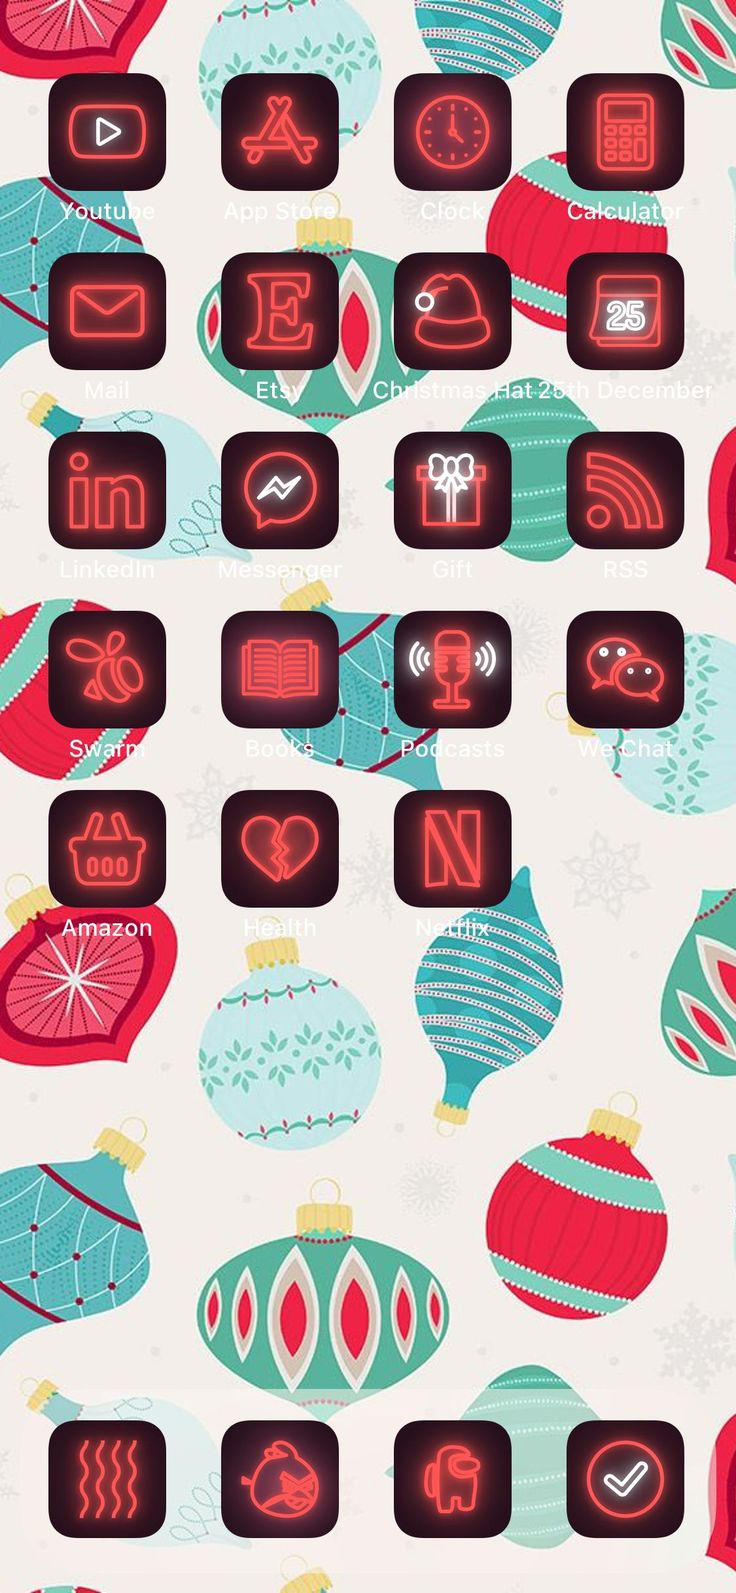 120+10 Red Neon iOS 14 App Icons Christmas Aesthetic for